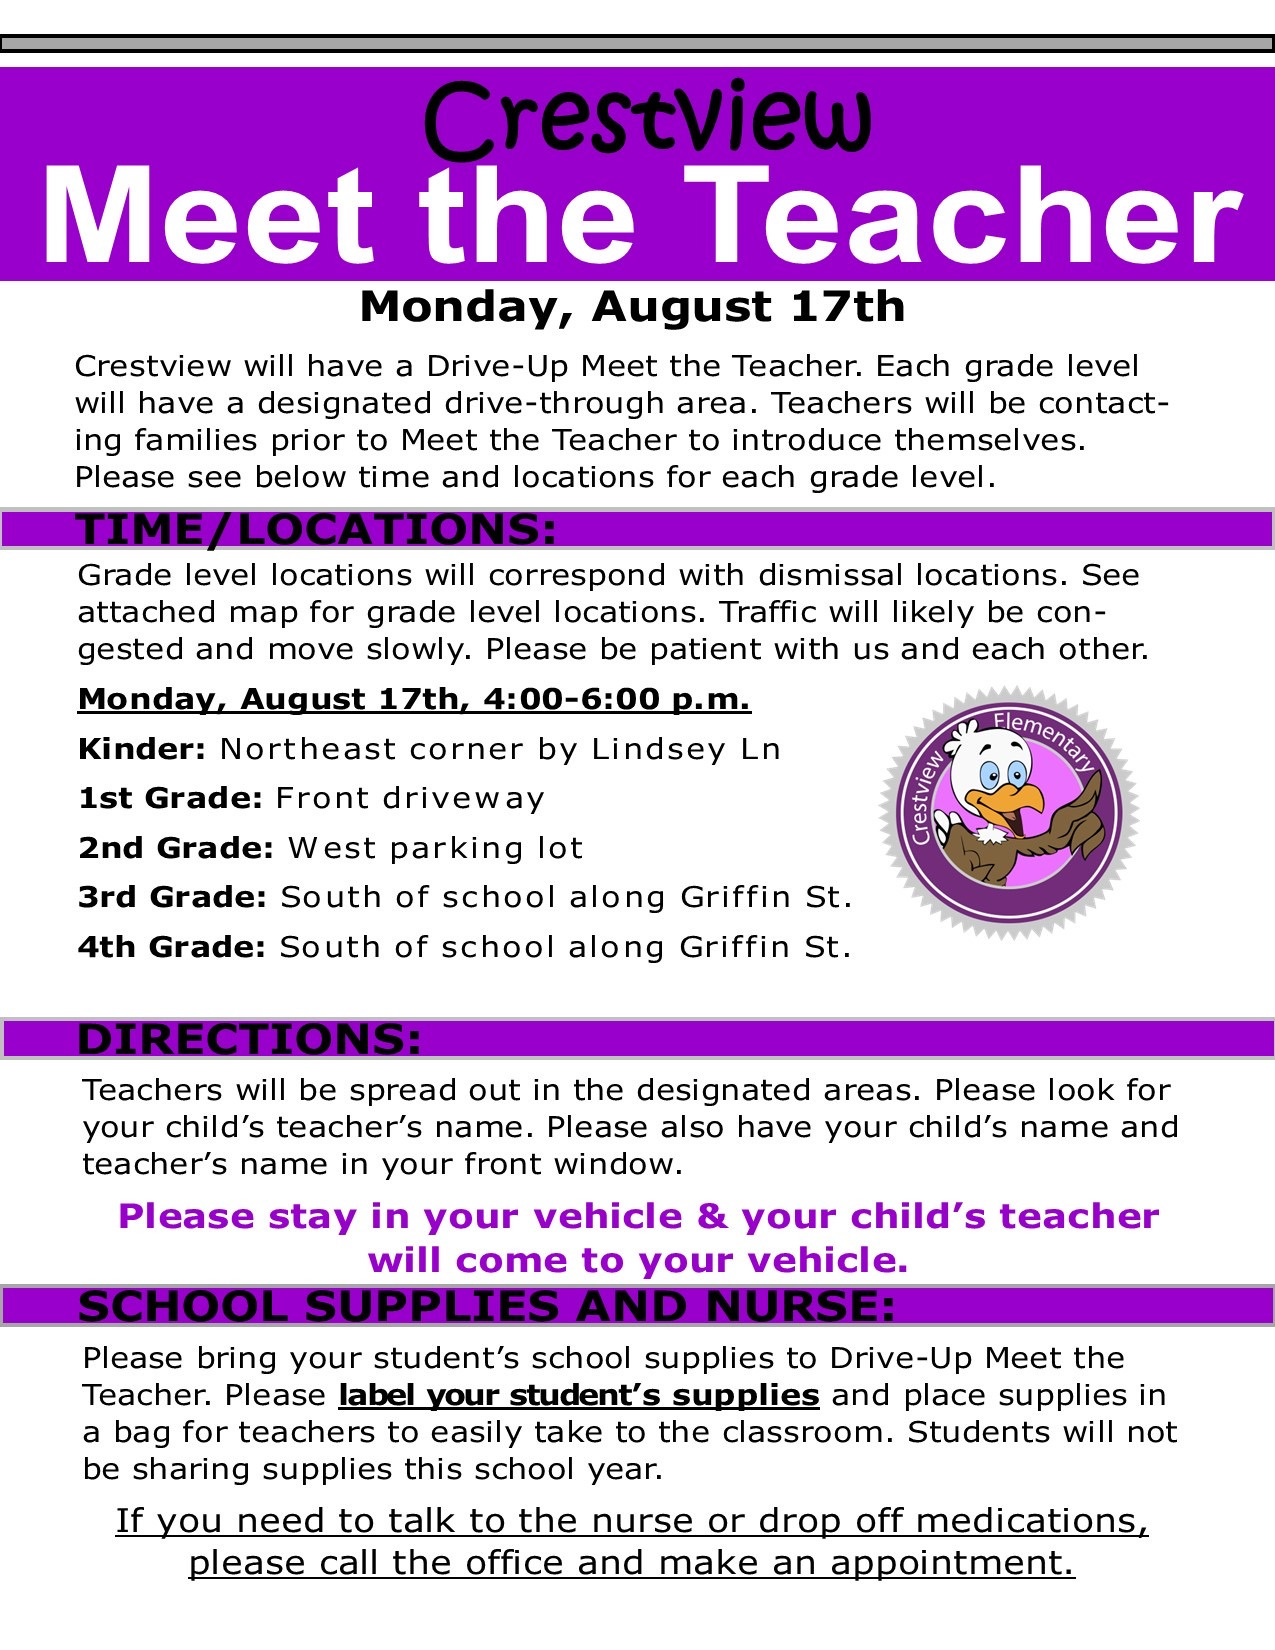 Crestview Elementary meet the teacher night is August 17th from 4 6